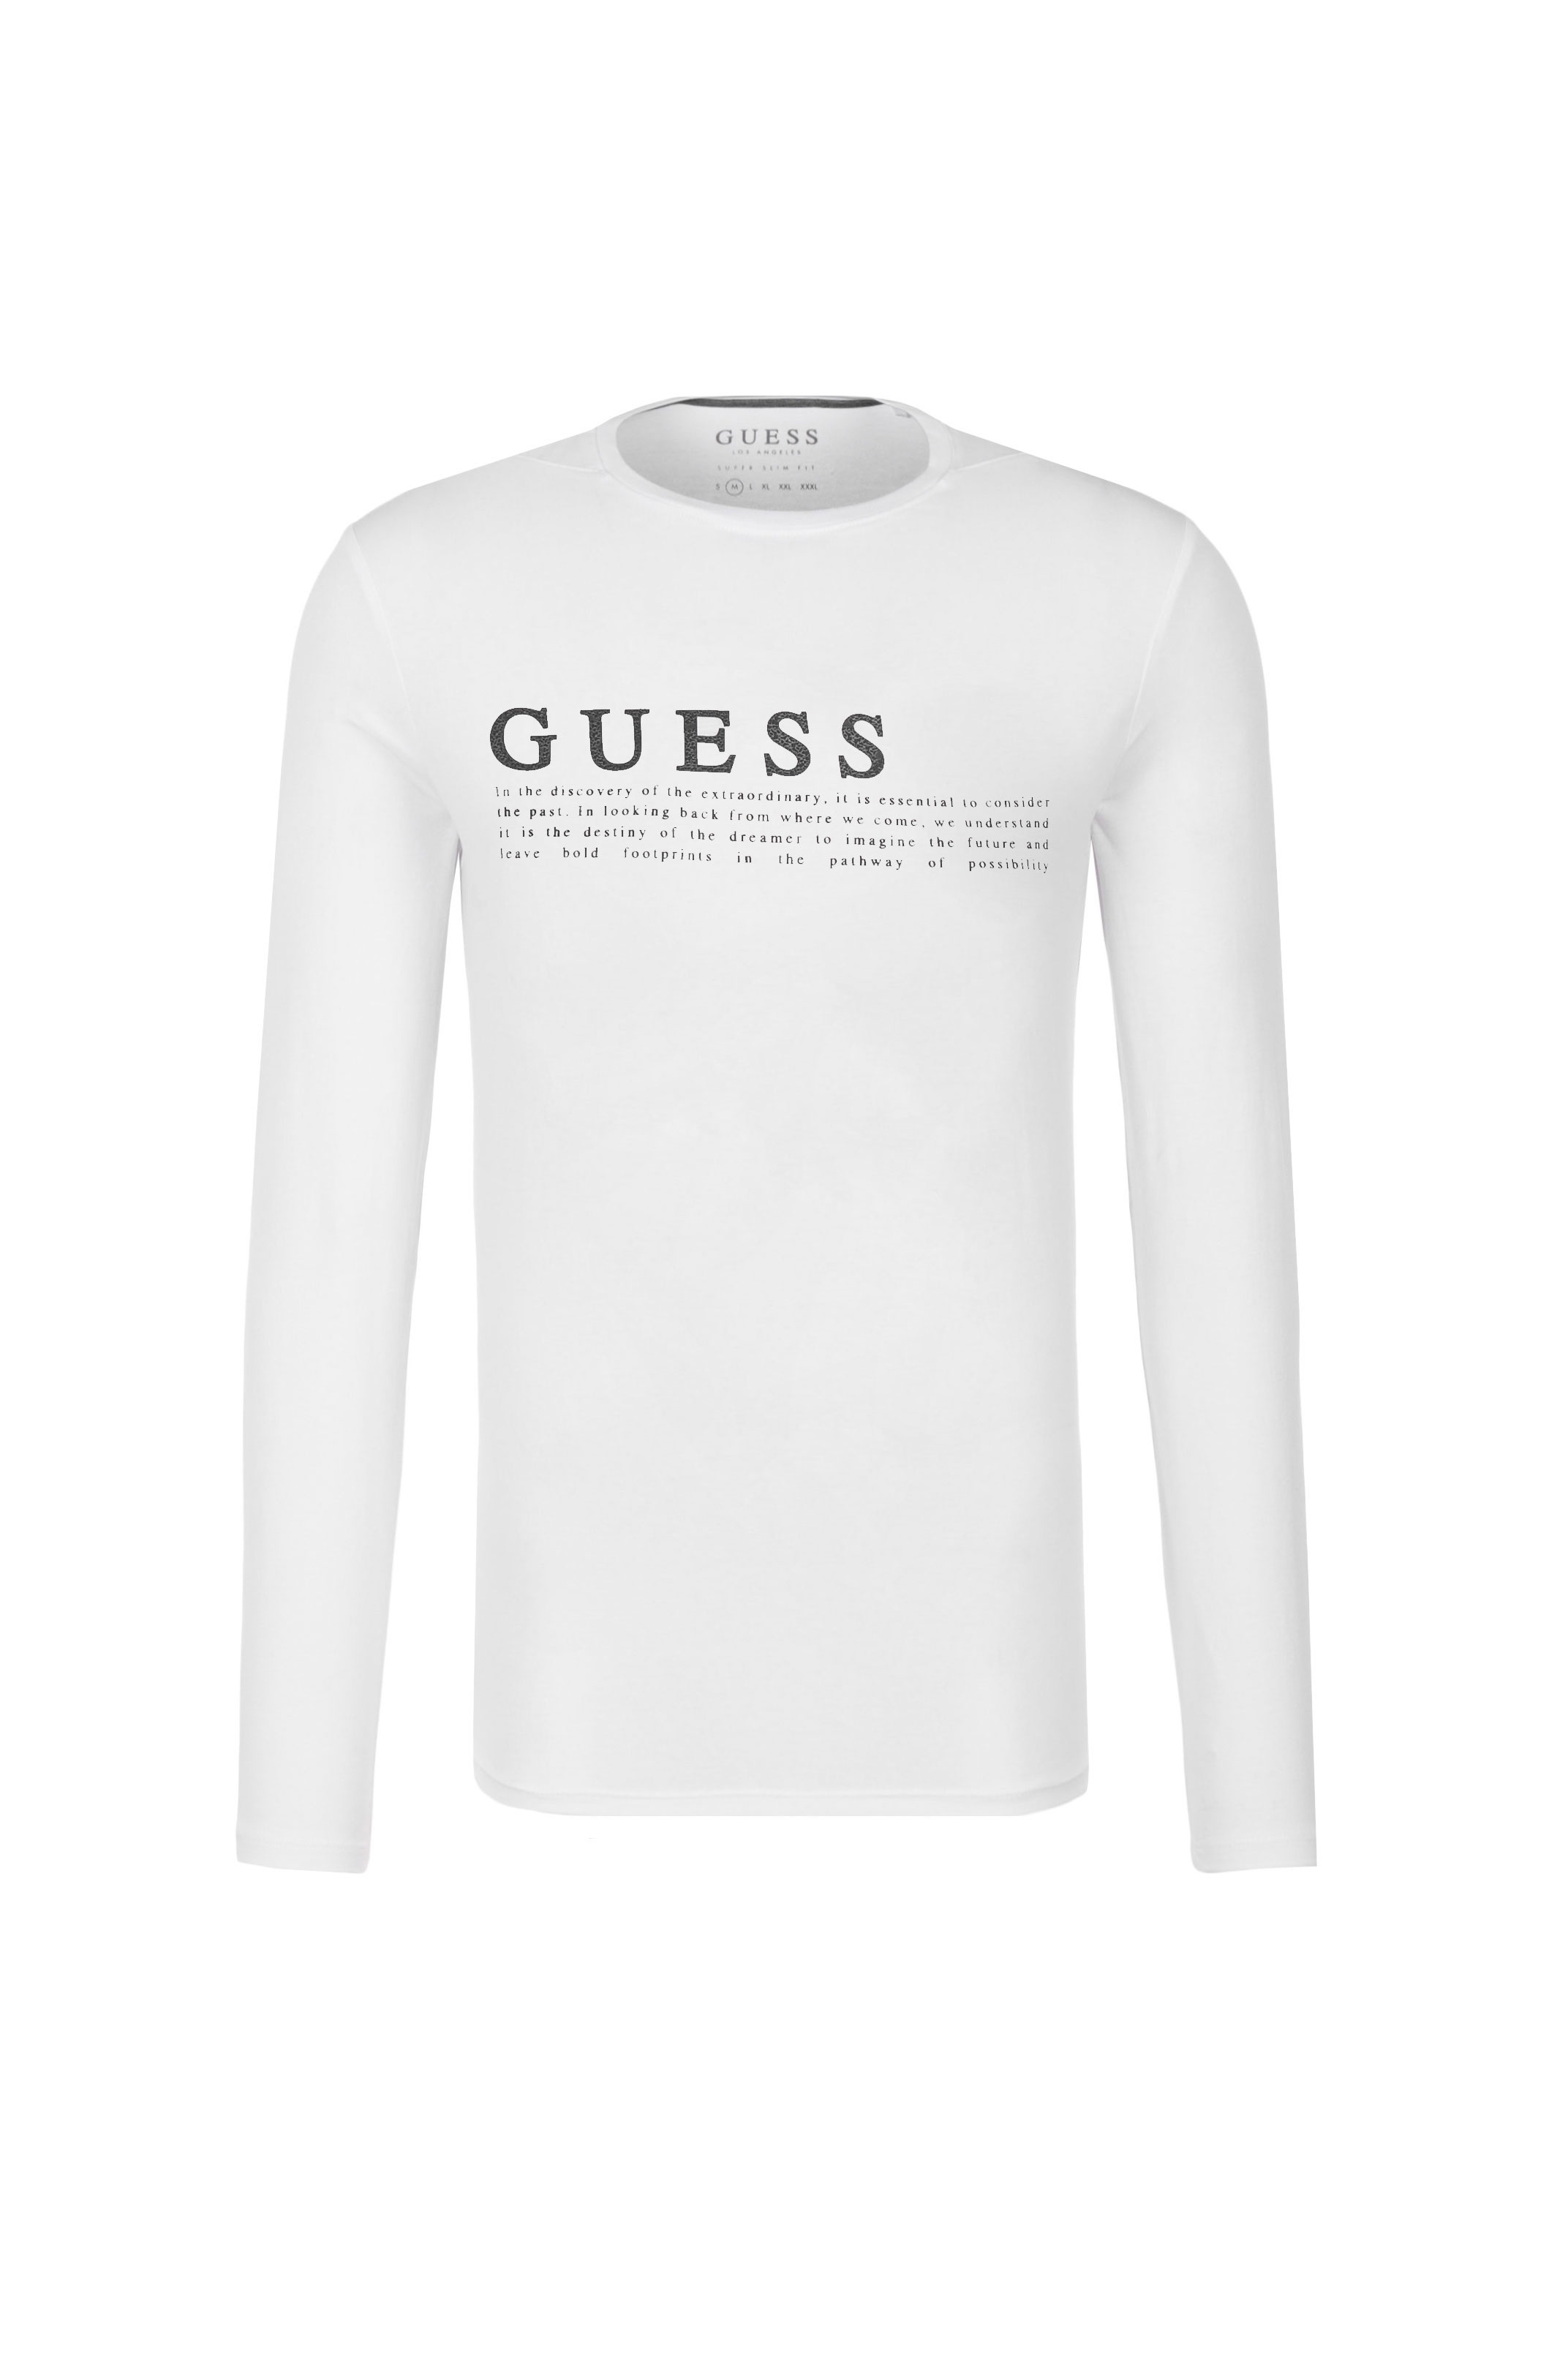 GUESS TEE-SHIRT MANCHES LONGUES M74I42 K6920 BLANC HOMME